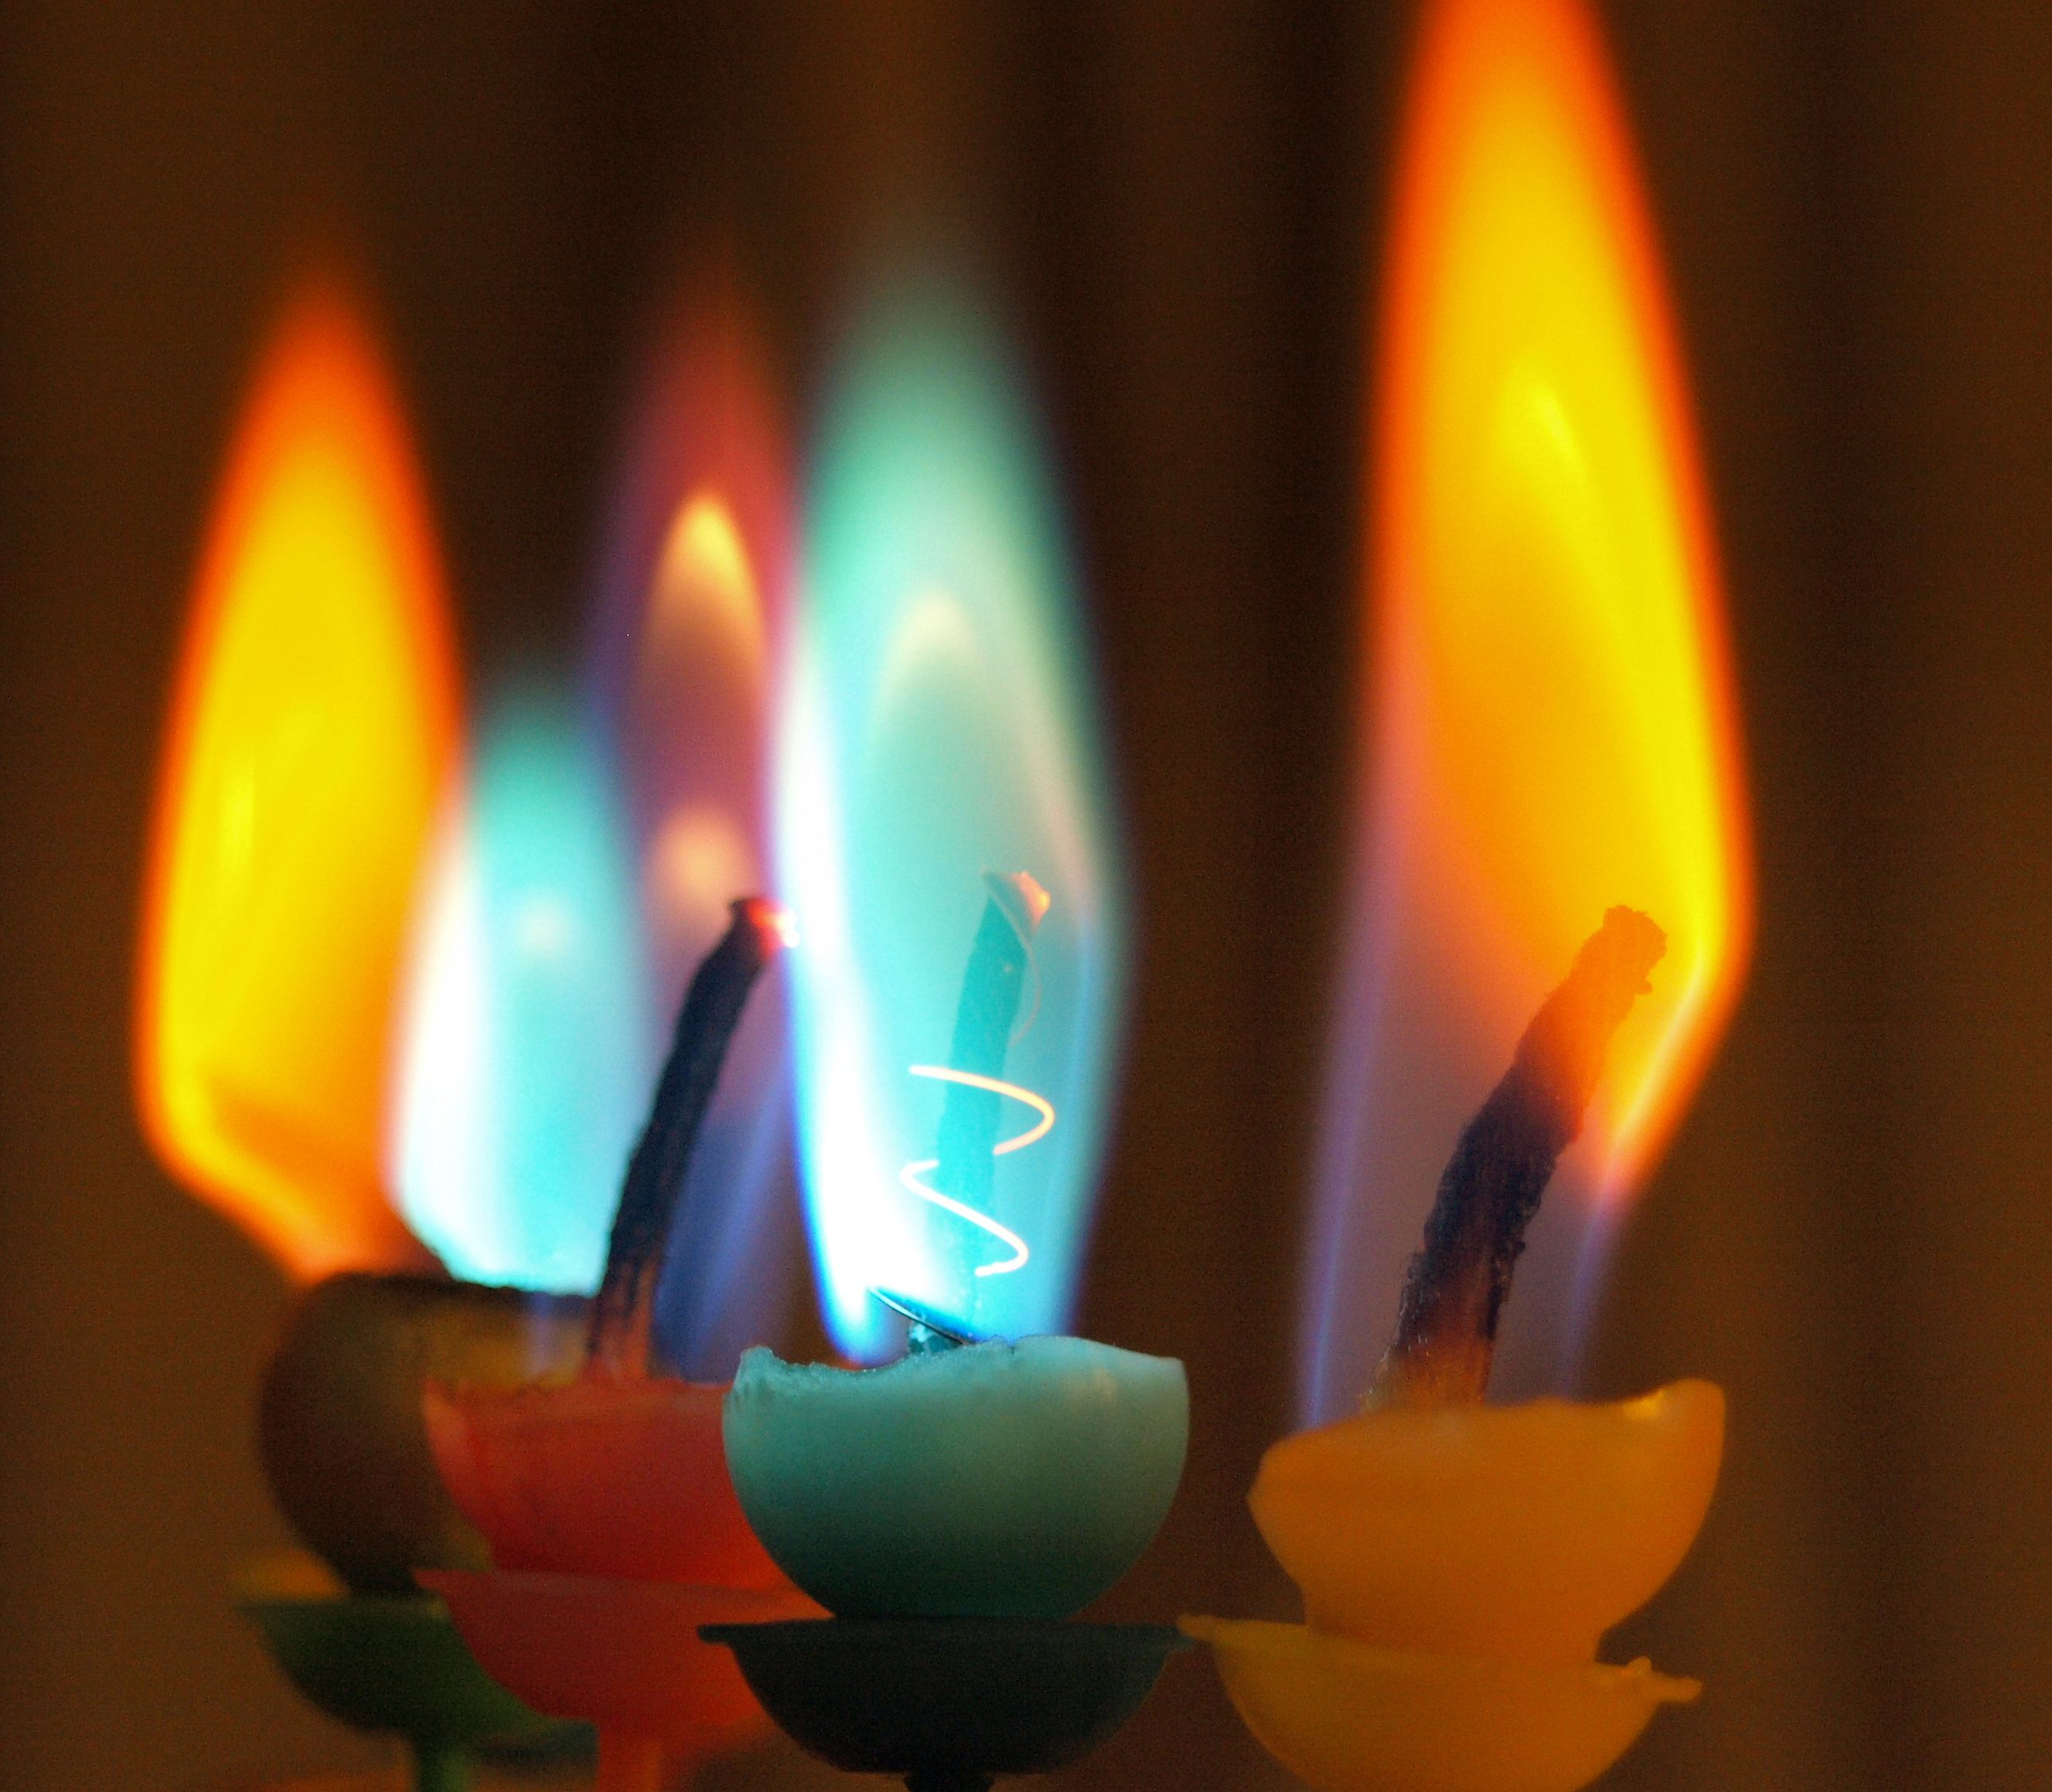 rainbow colored flames using household chemicals